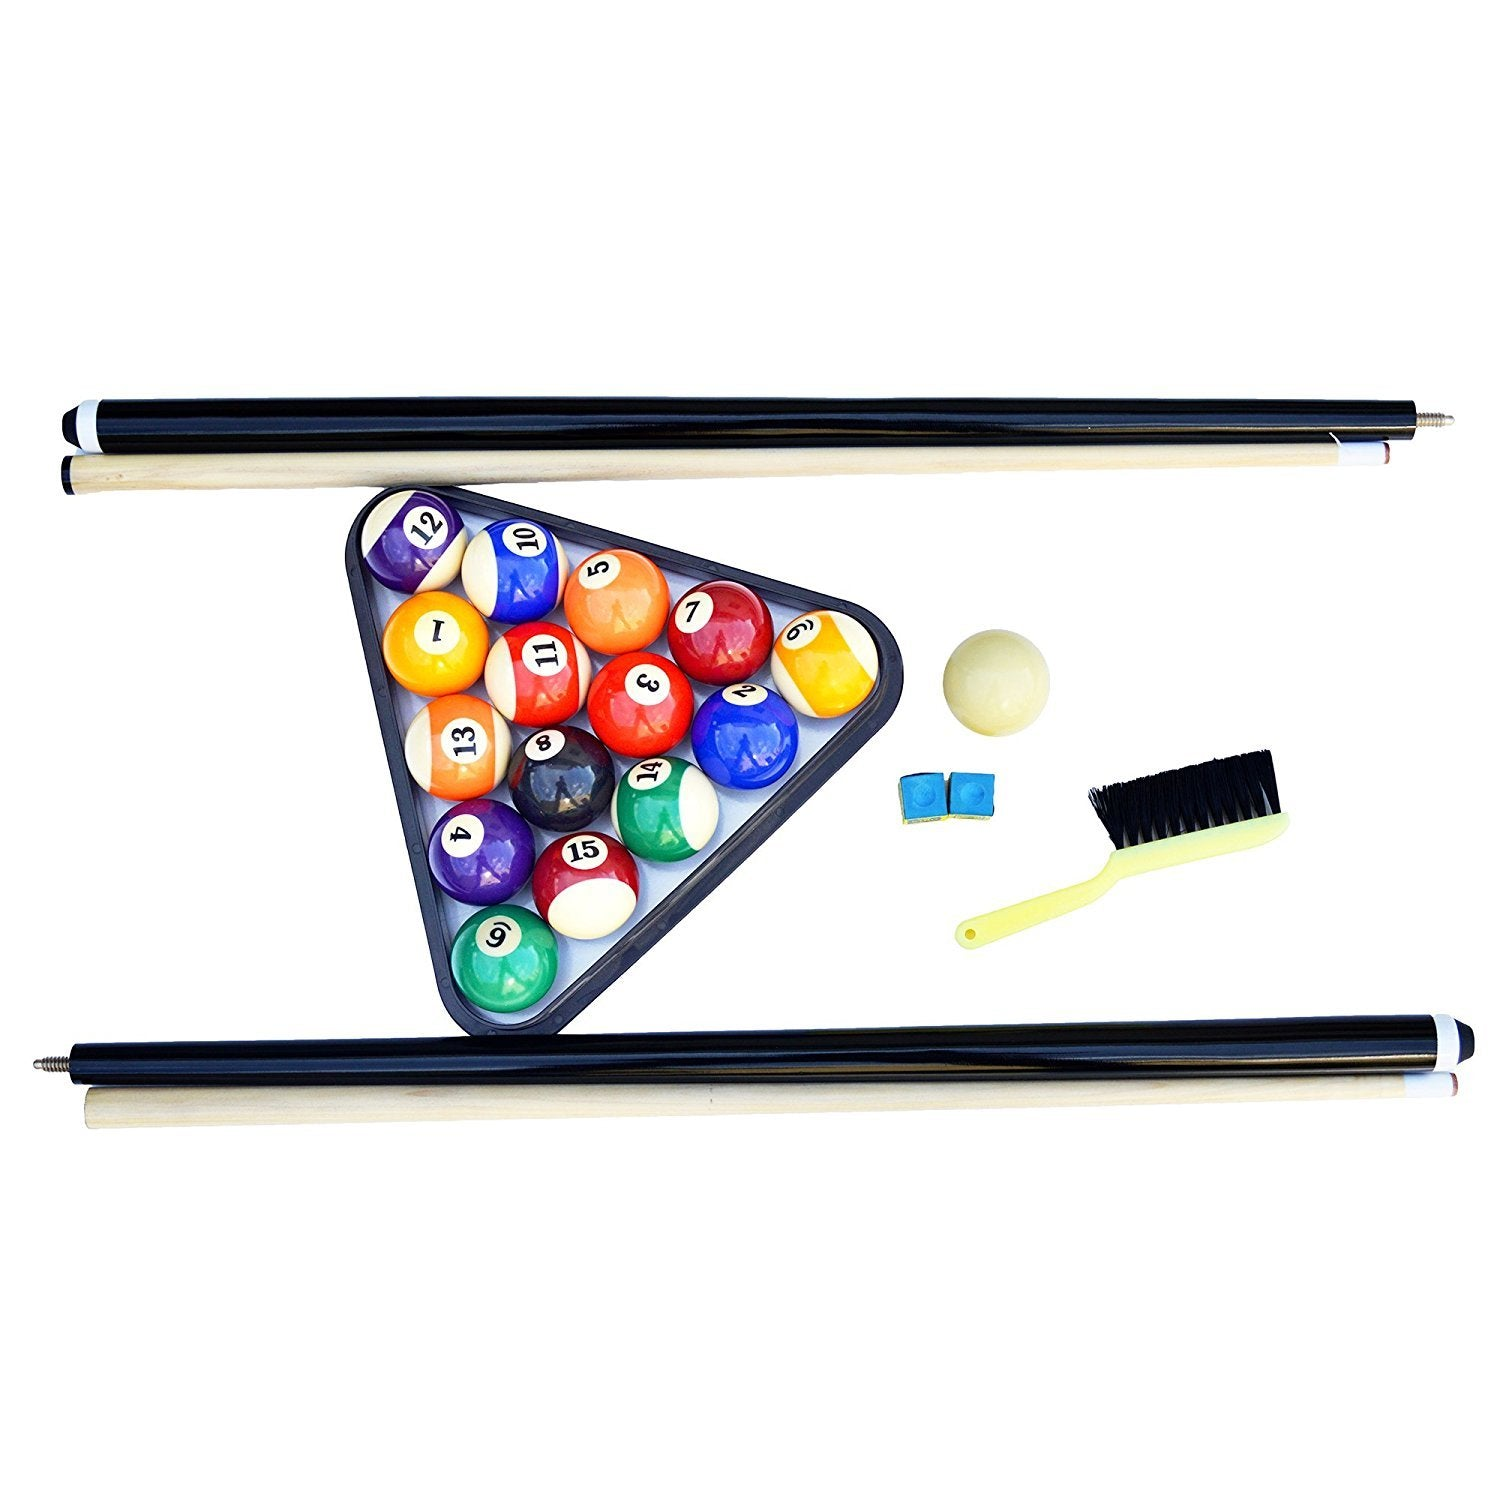 Portable 6 Ft Pool Table For Families With Easy Folding For Storage I Amazuda